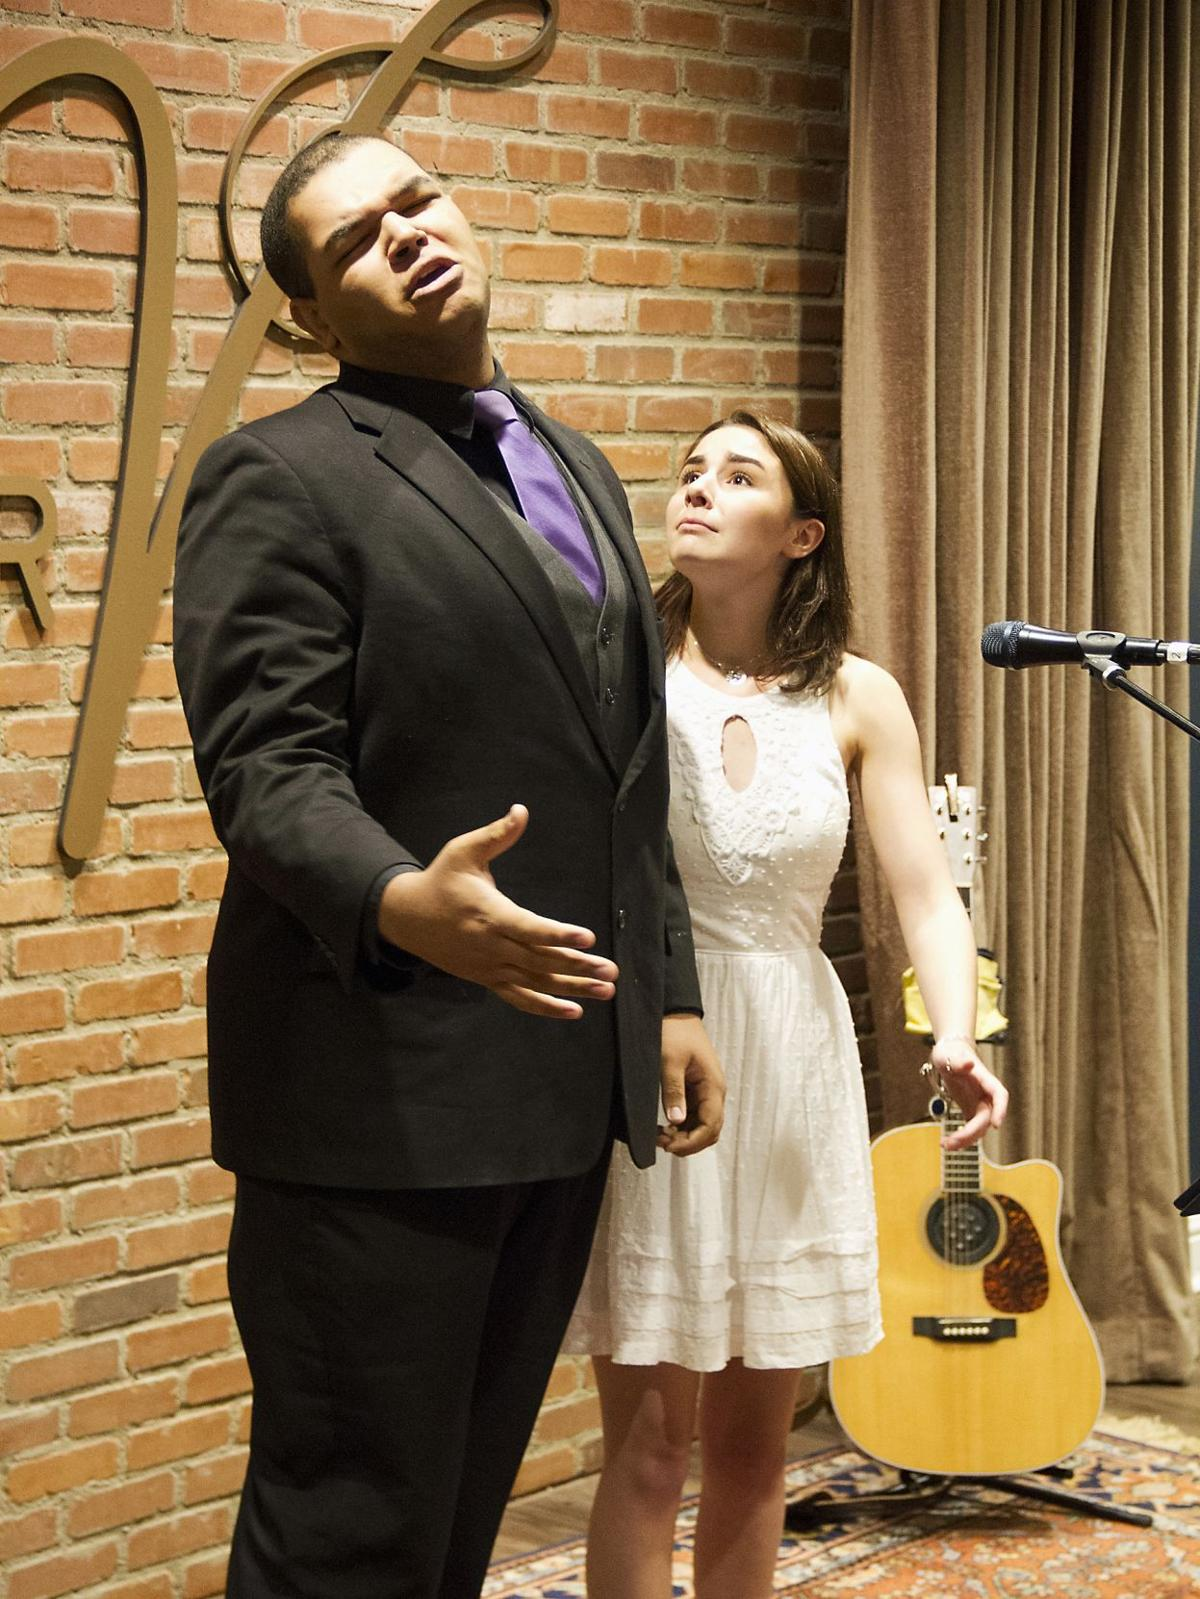 Vocal point: Upper St. Clair resident brings singing studies under one roof